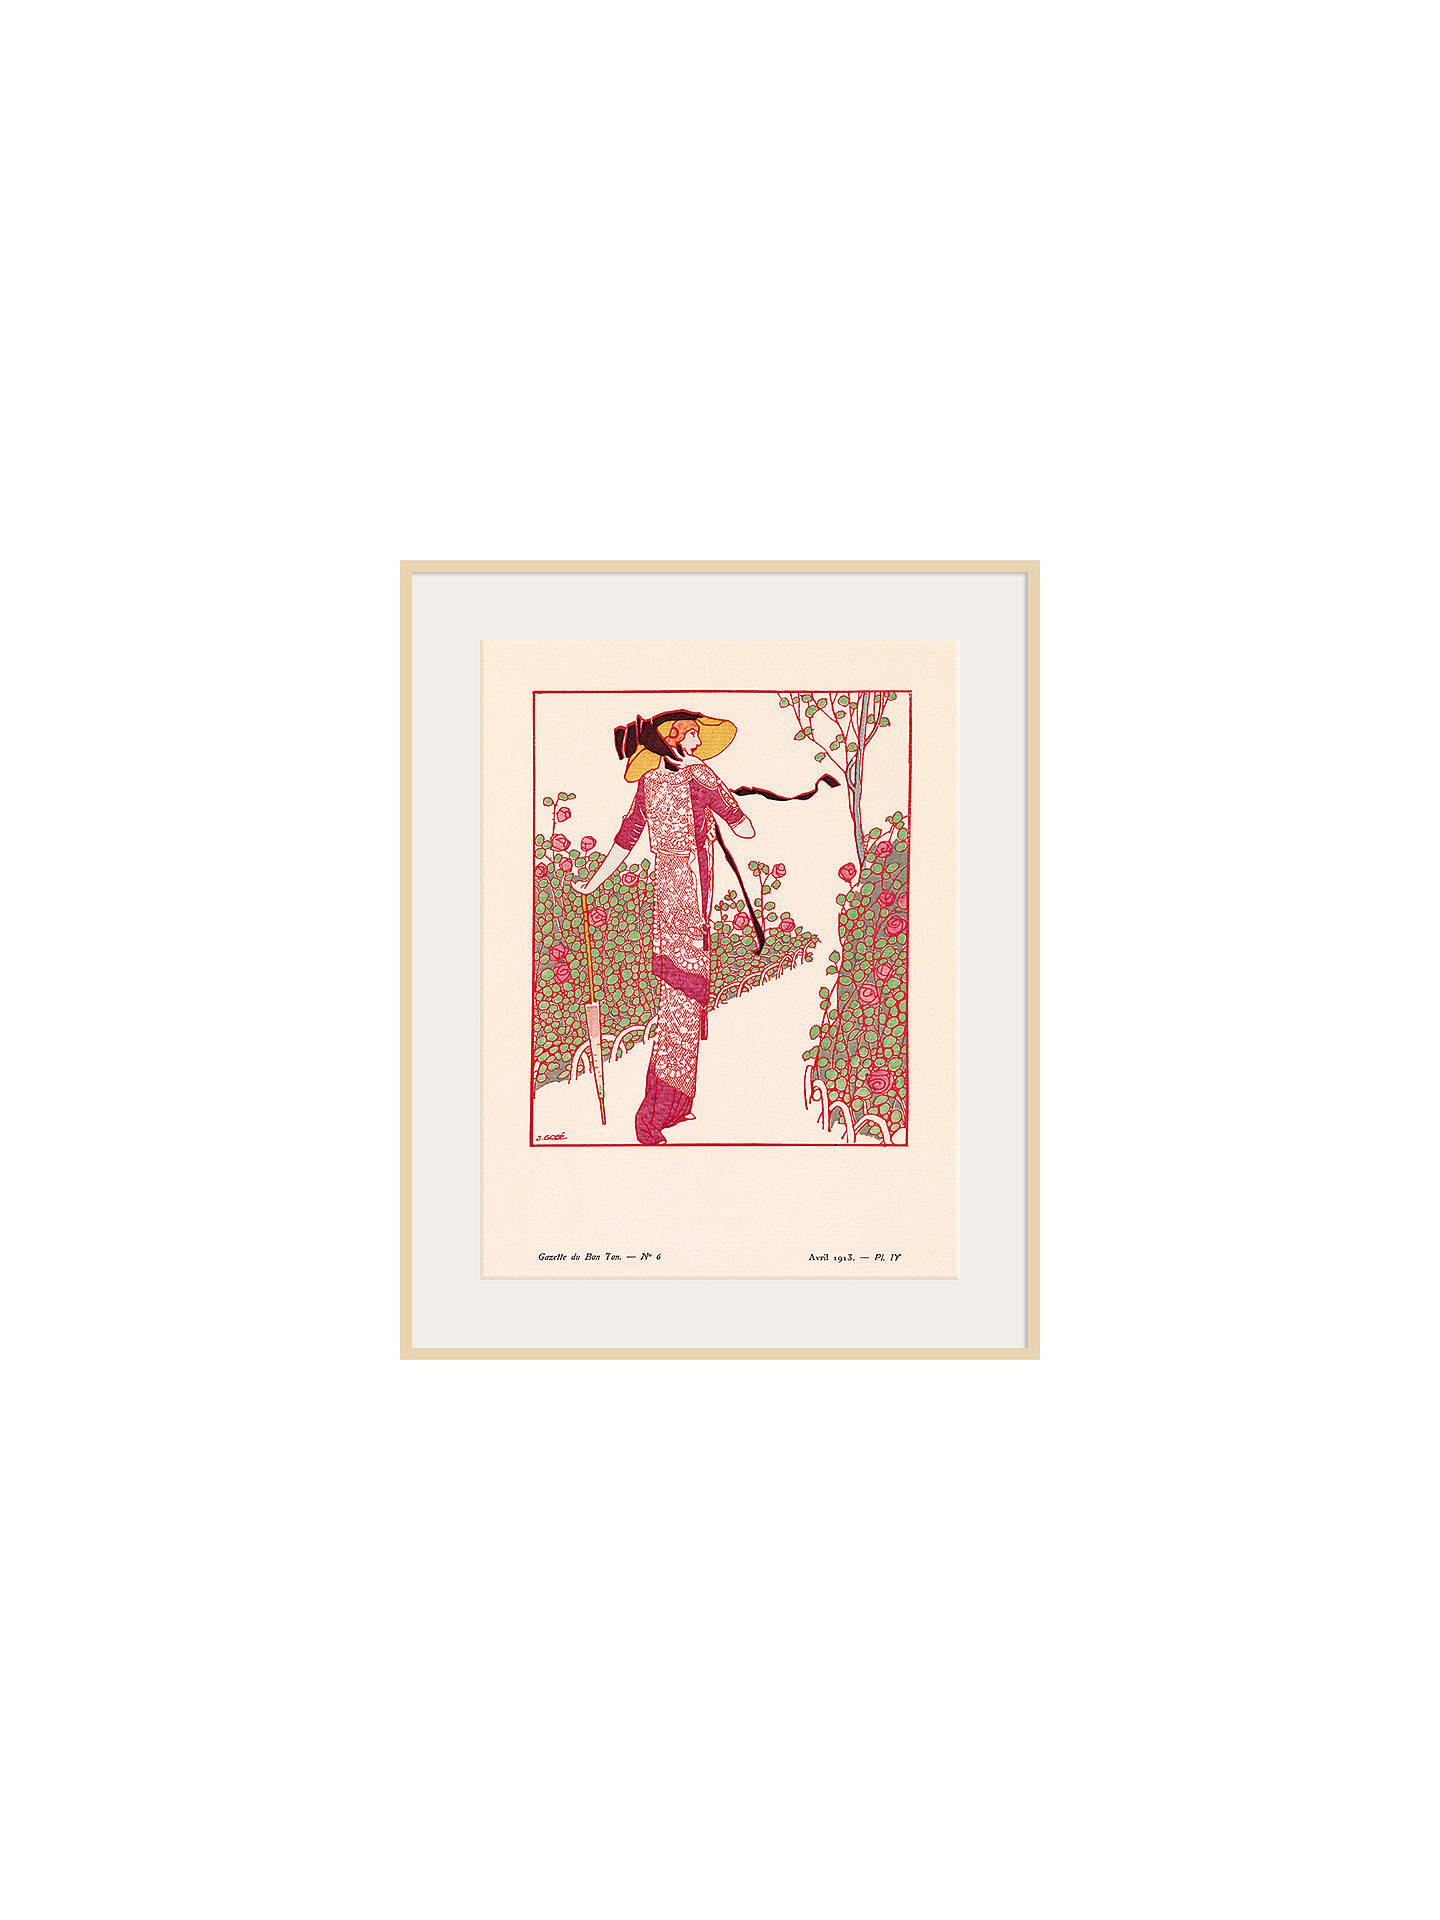 BuyThe Courtauld Gallery, Gazette Du Bon Ton - No 6 1913 Une Rose Parmi Les Roses Print, 50 x 40cm, Natural Ash Framed Print Online at johnlewis.com